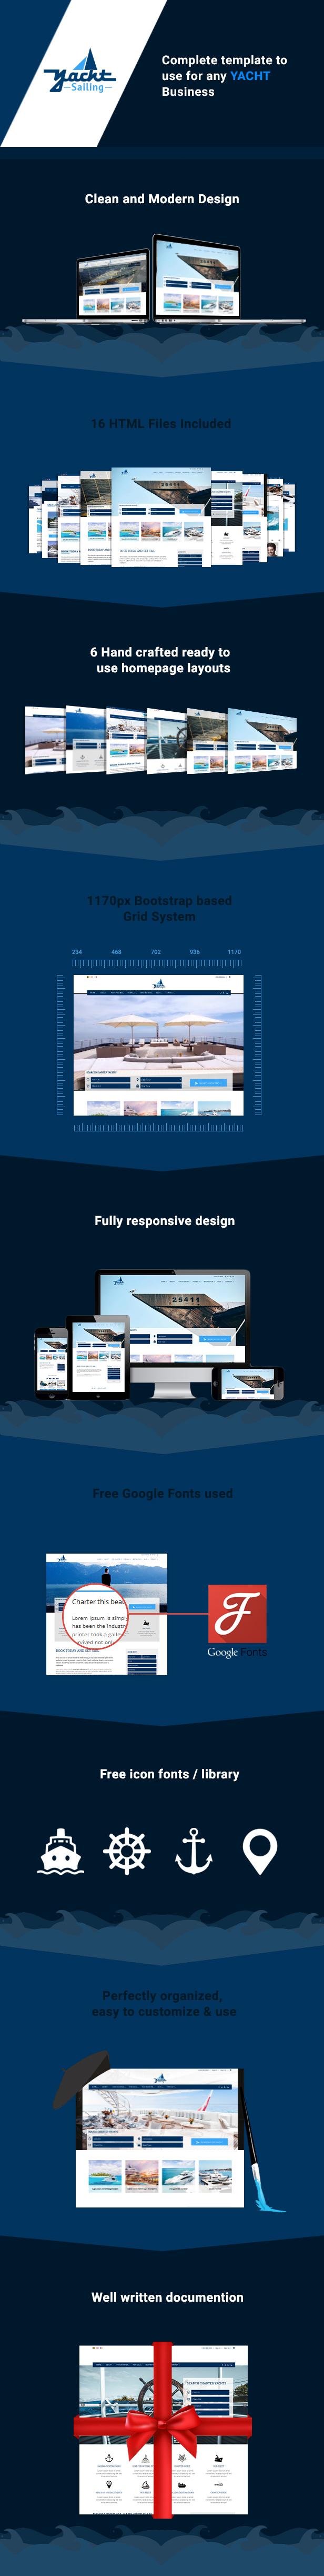 Yacht Sailing -  Marine Charter Booking - Selling template - 1